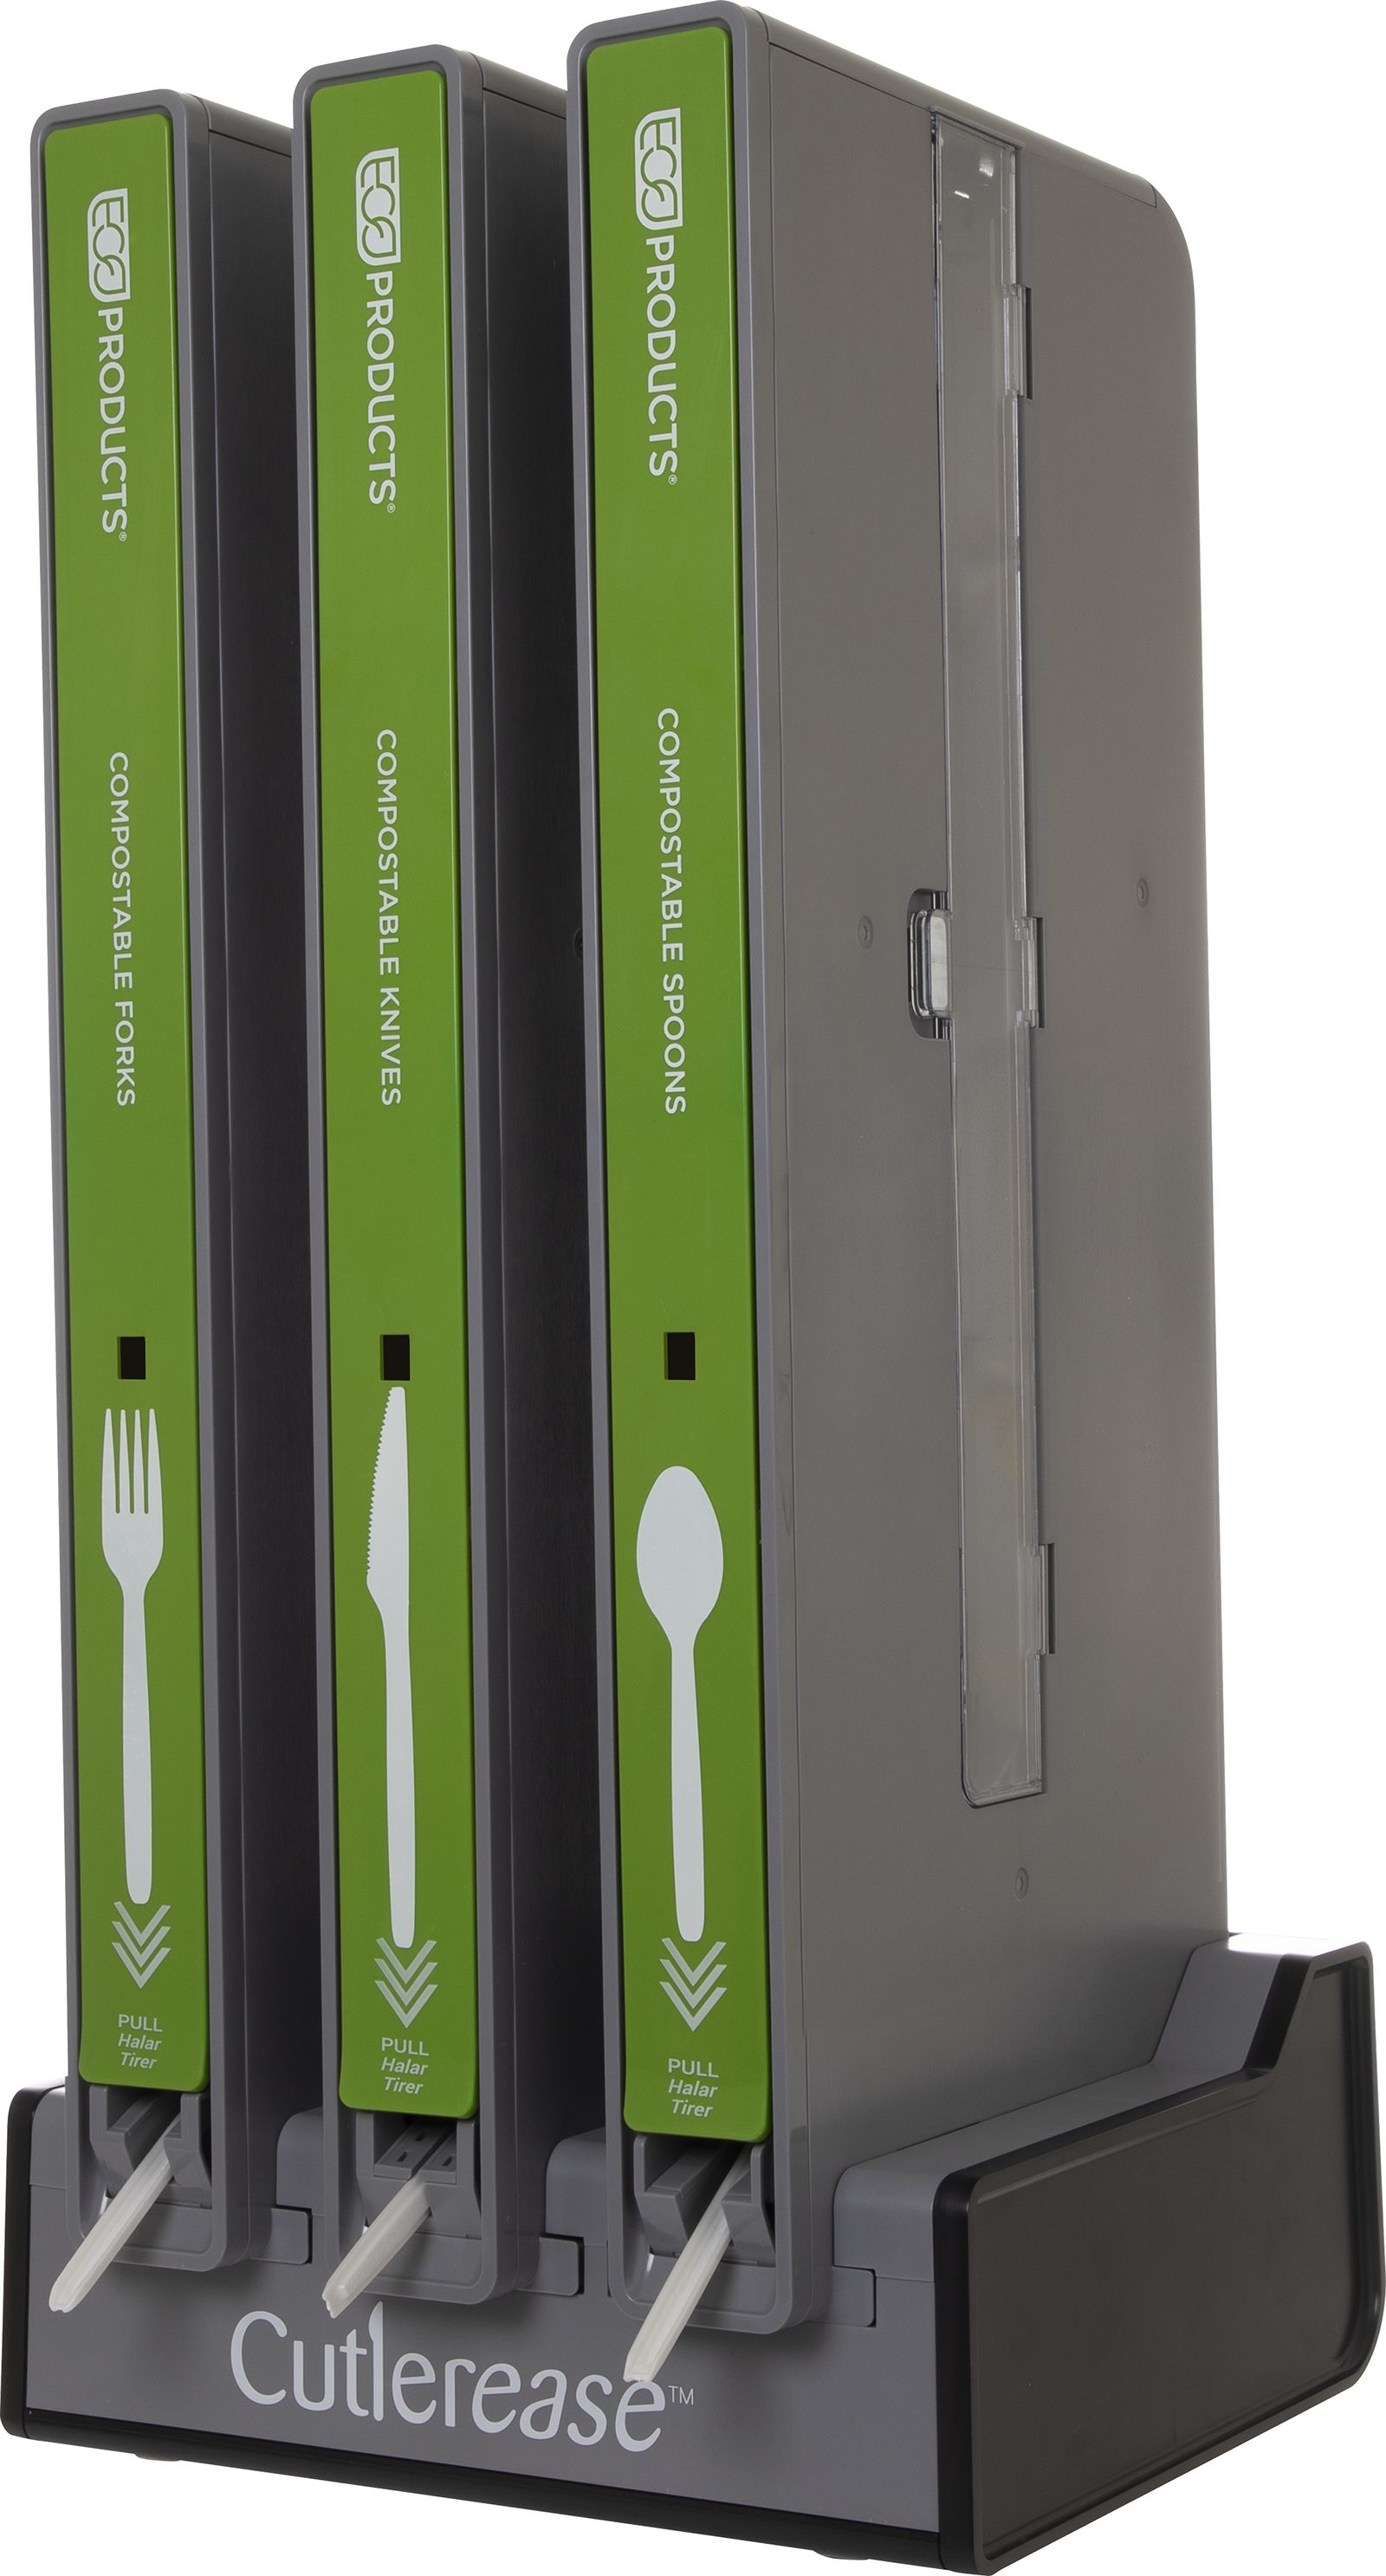 Eco-Products Unveils Compostable Utensils for Cutlerease Single-Unit Dispenser